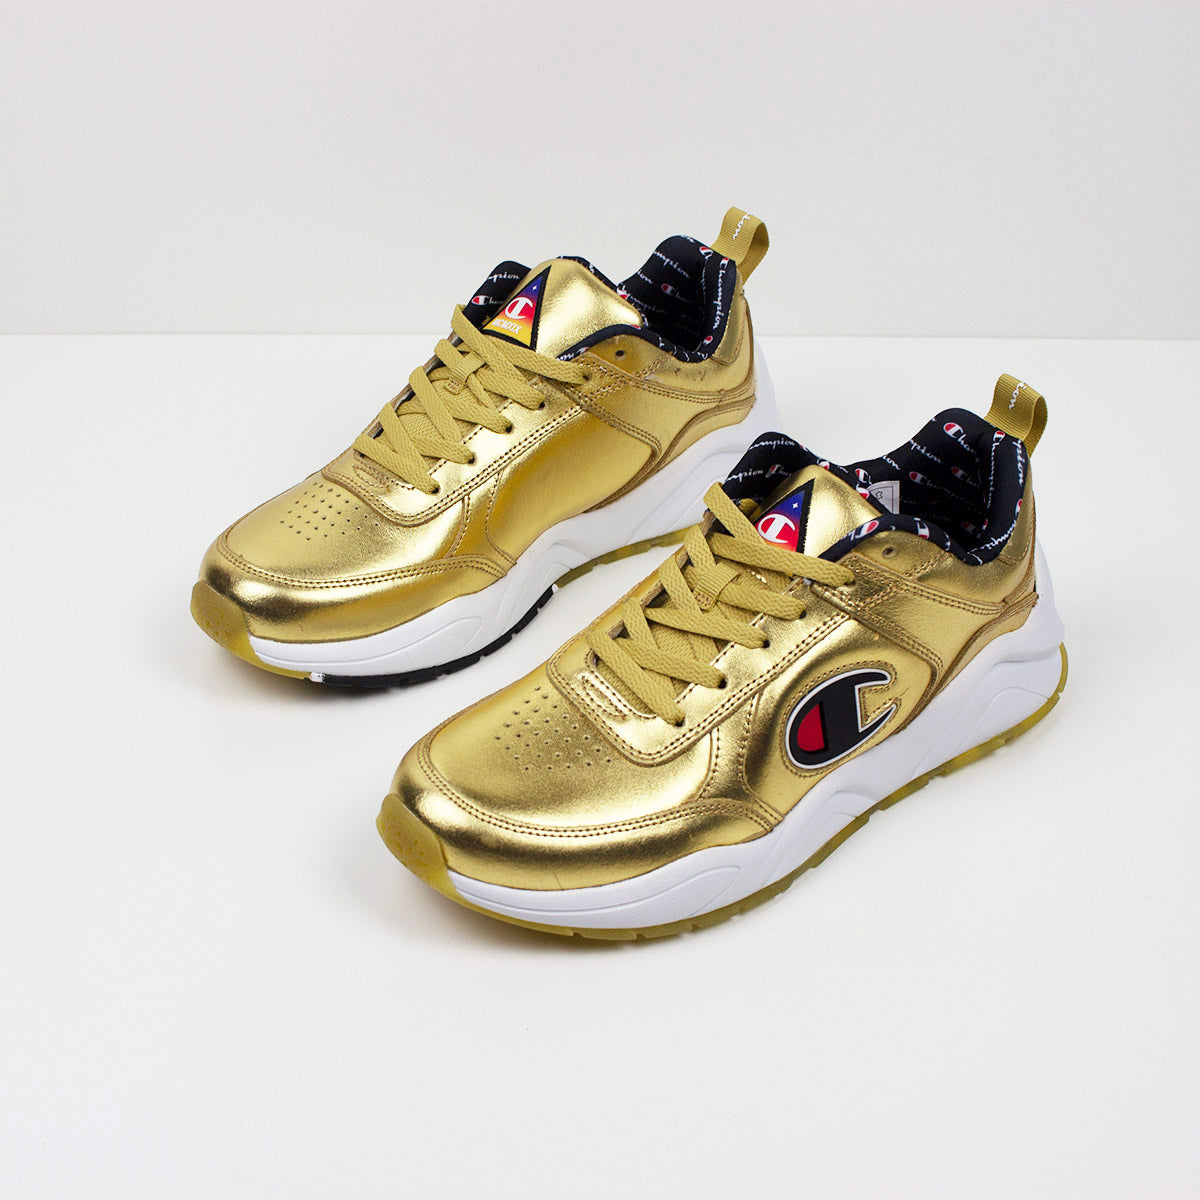 ce0cd61ac8d Champion 93 Eighteen Metallic Gold Sneakers - PremierVII. Champion